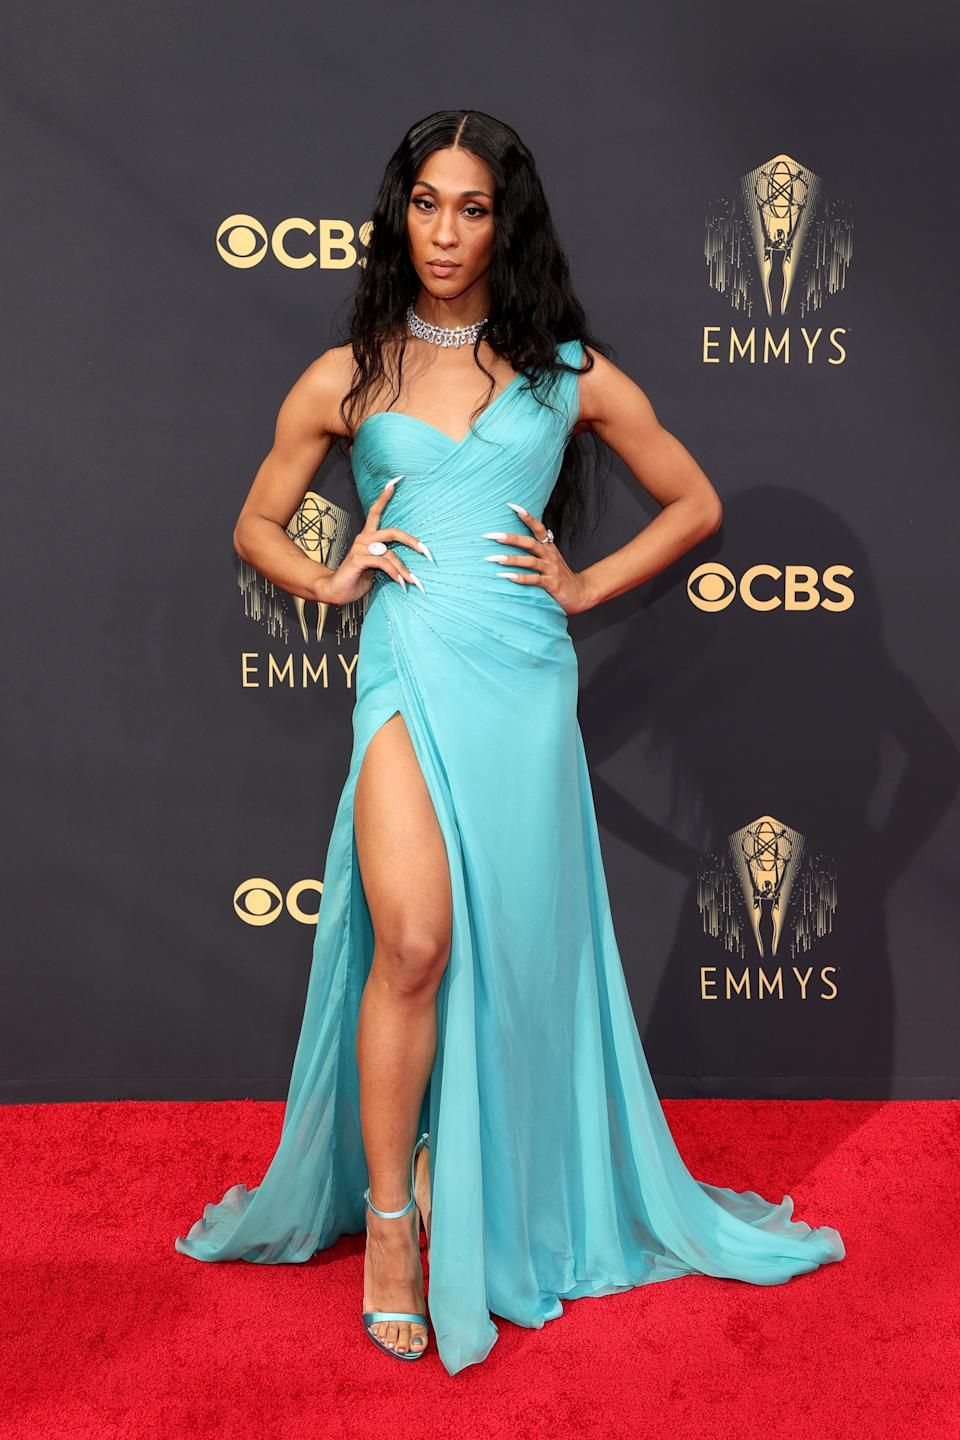 Michaela Jaé 'MJ' Rodriguez wears a turquoise gown at the 73rd Primetime Emmy Awards at L.A. LIVE on September 19, 2021 in Los Angeles, California. (Photo by Rich Fury/Getty Images)